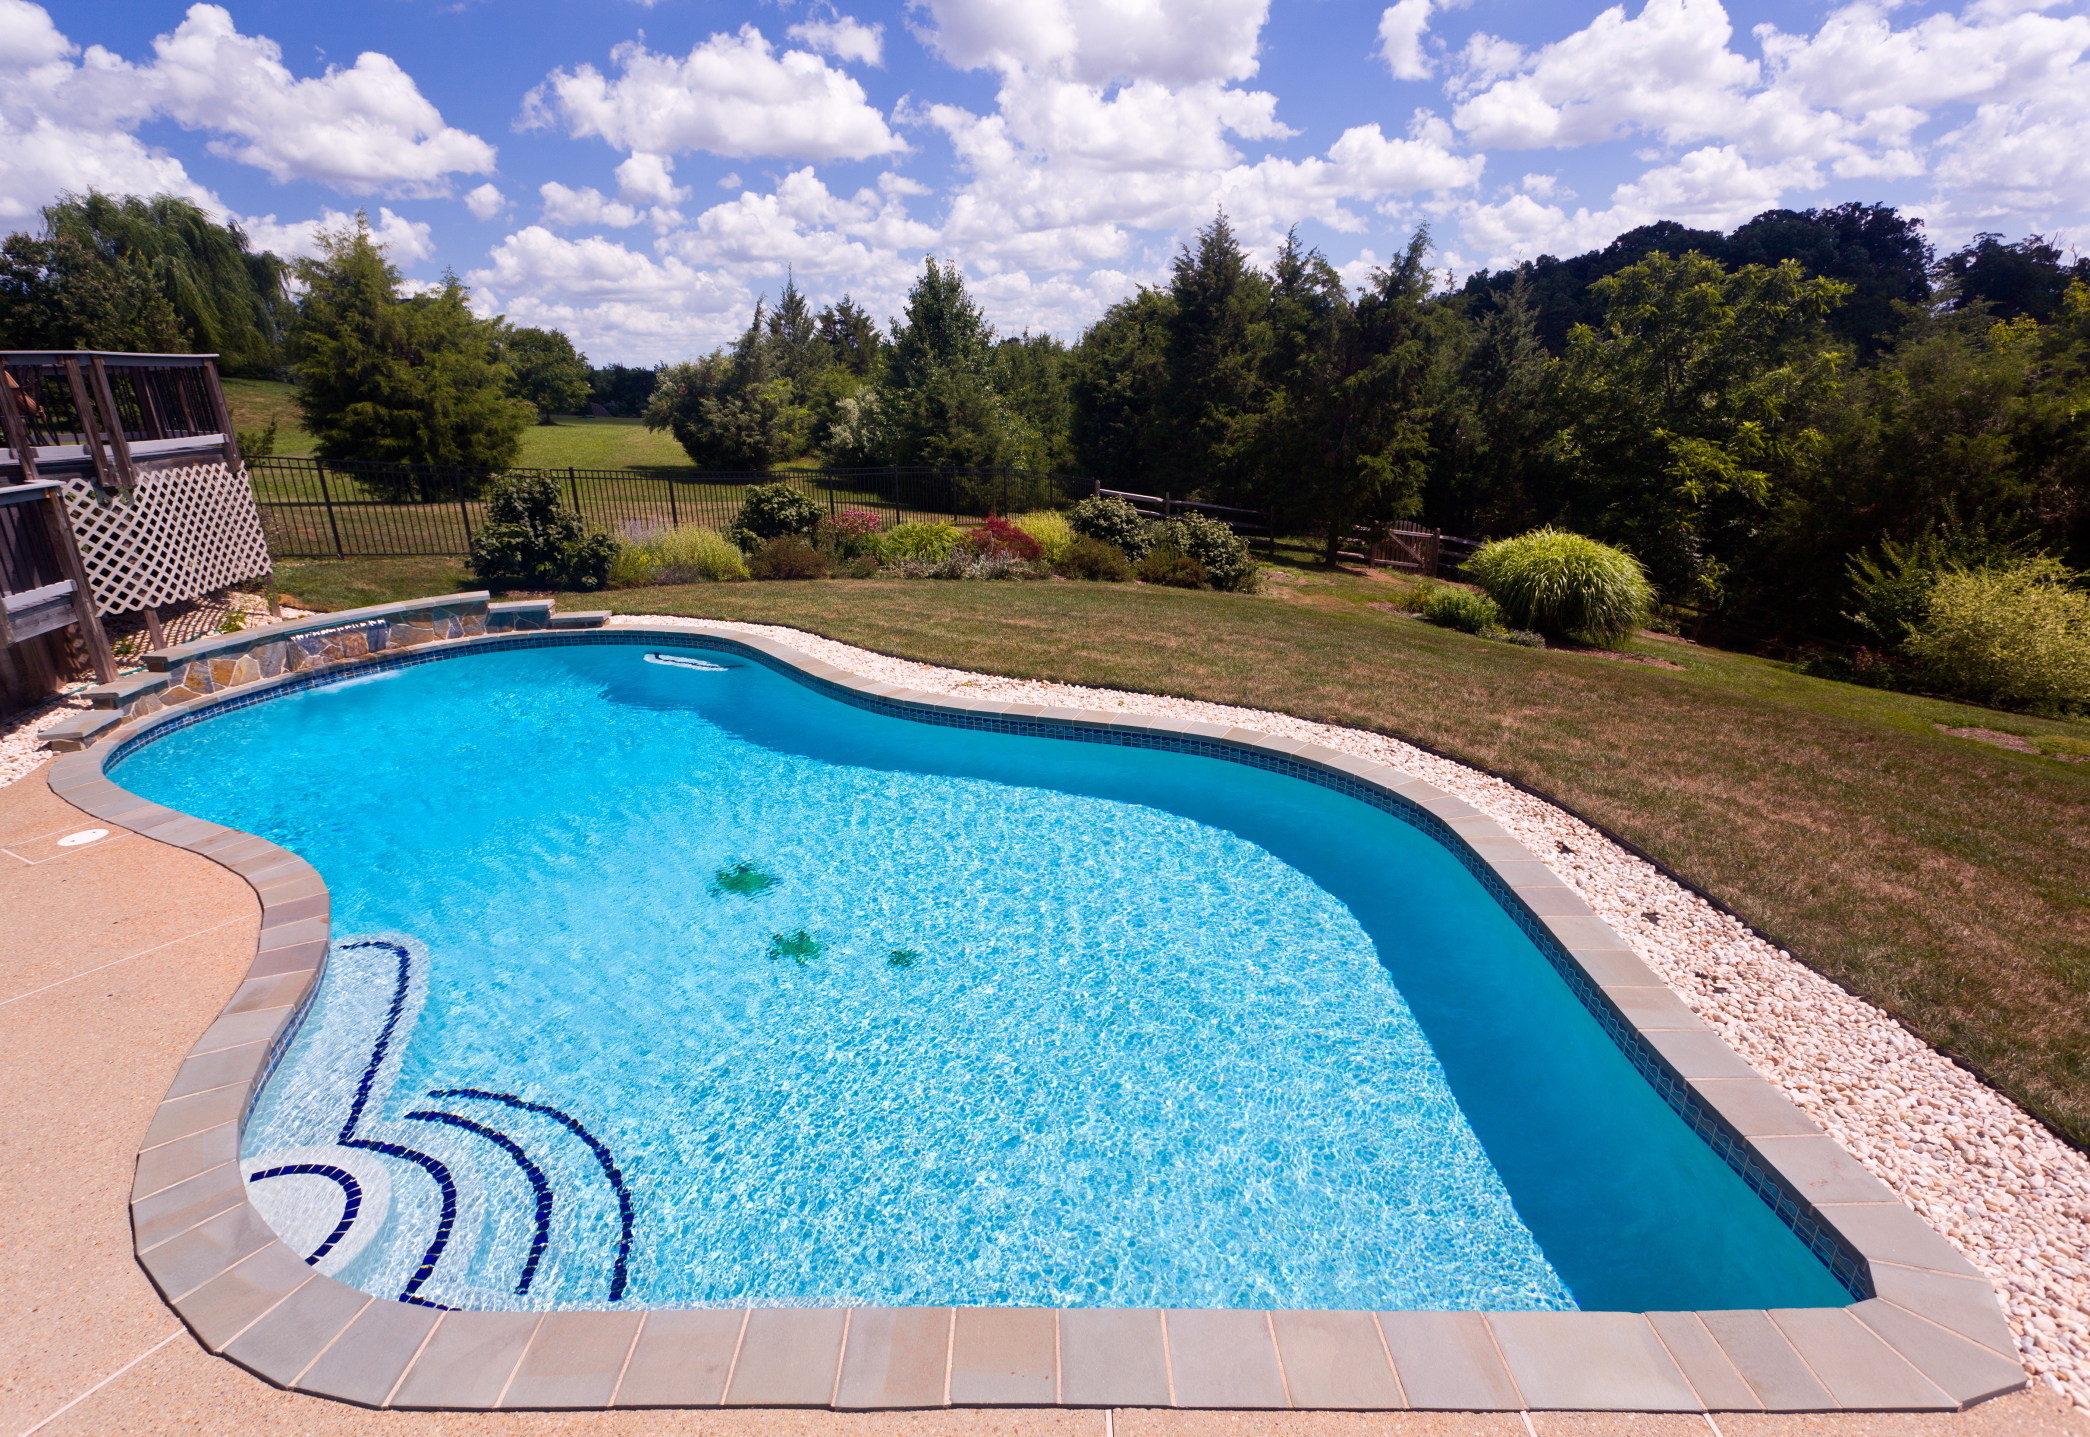 Tips to Keep Your Swimming Pool Like New for Years